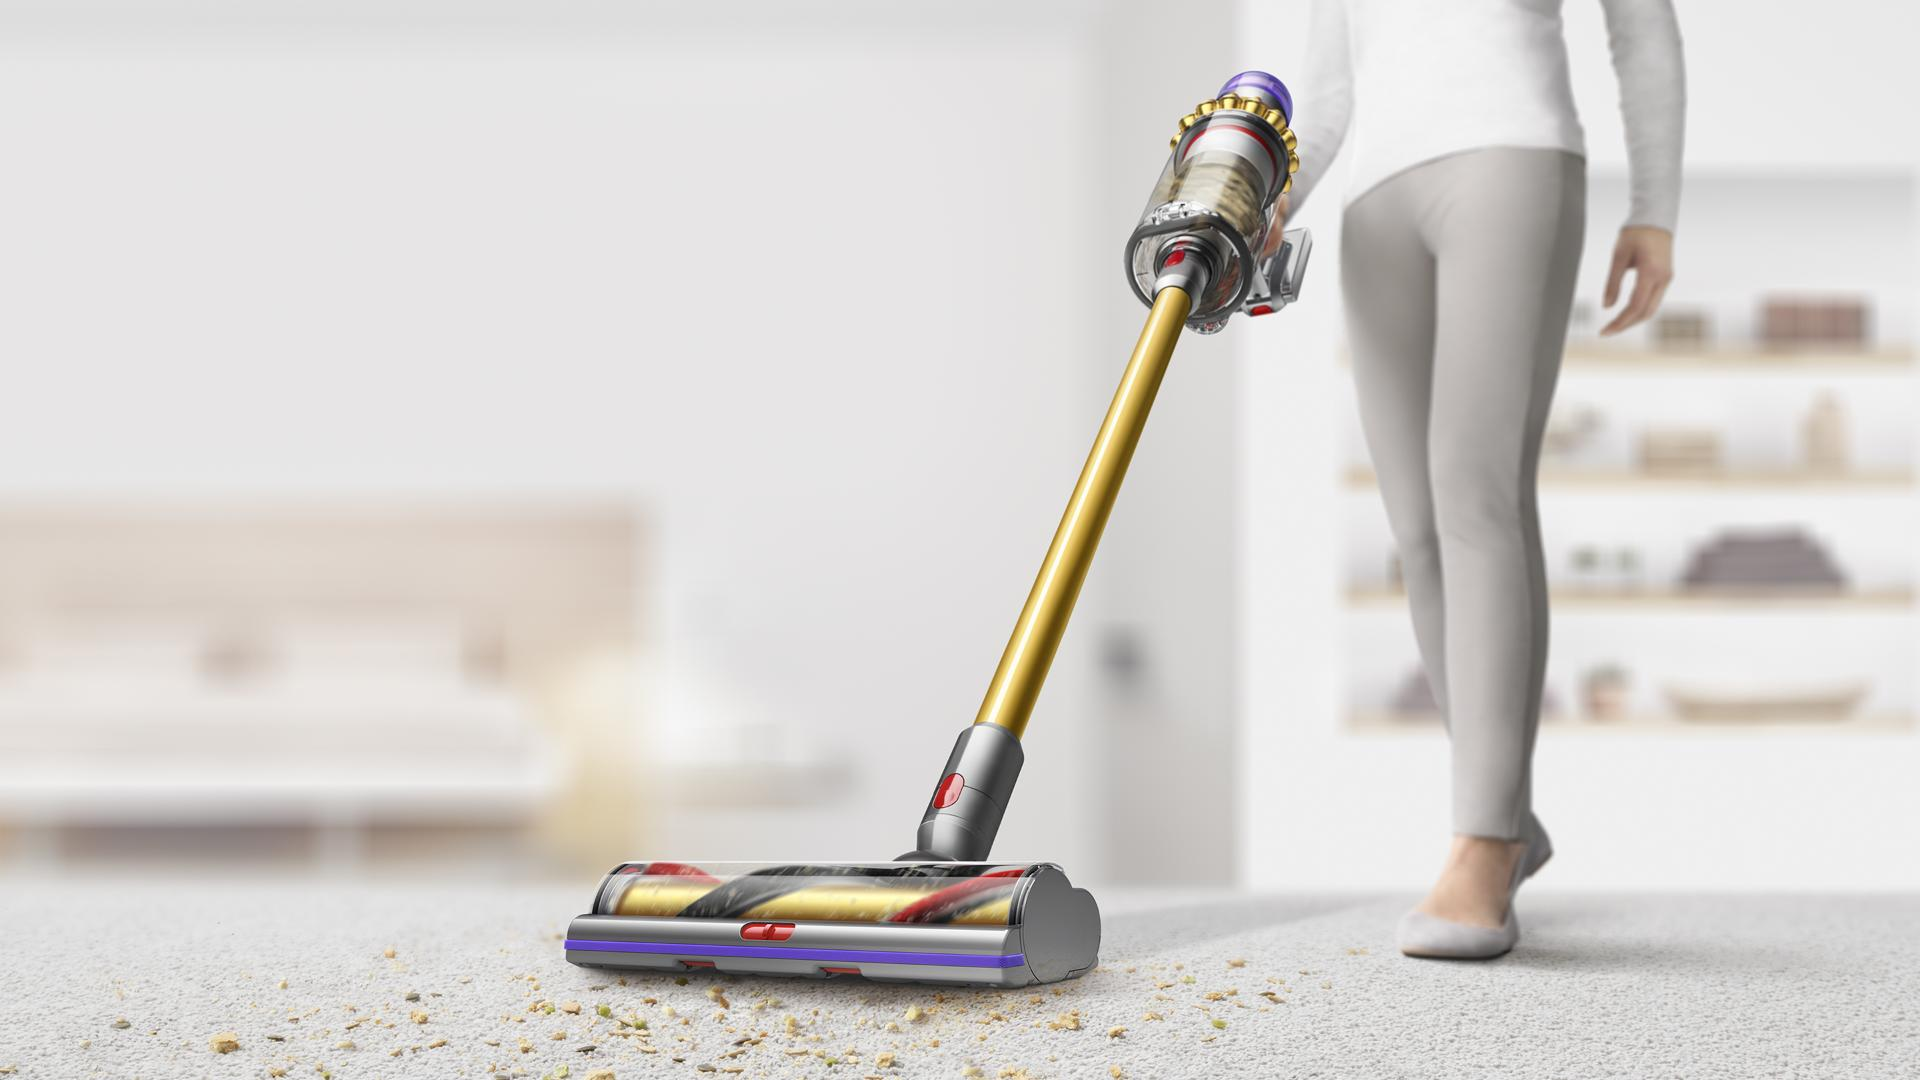 High Torque XL cleaner head moving from hard floor to carpet